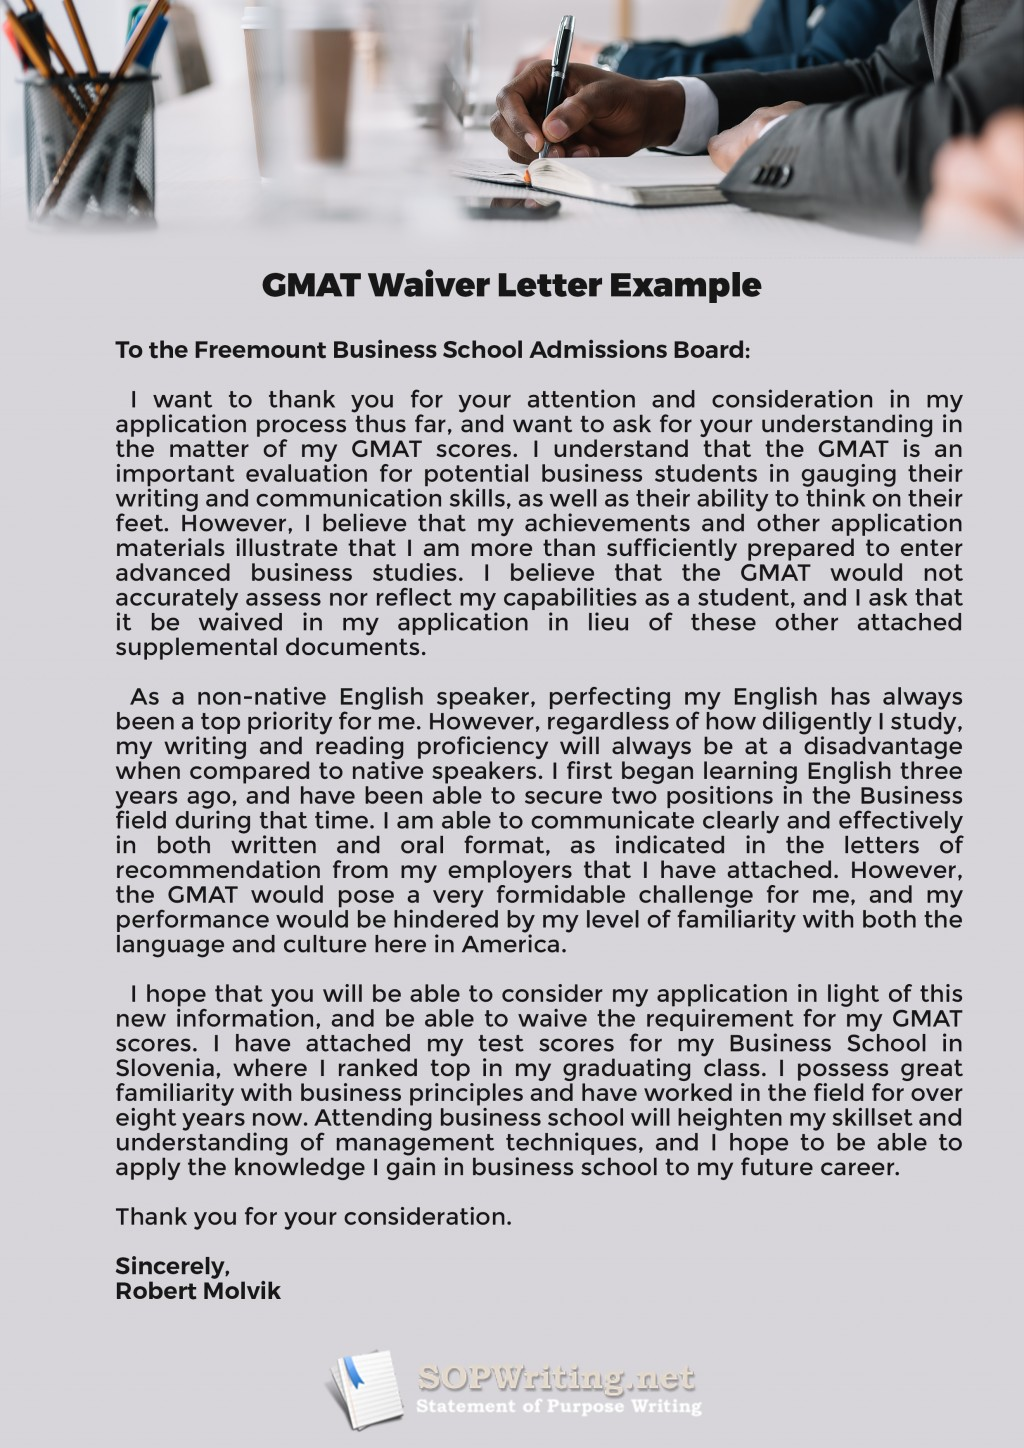 016 Gmat Waiver Letter Example Essay Shocking Sample Topics Awa Essays Free Download Large